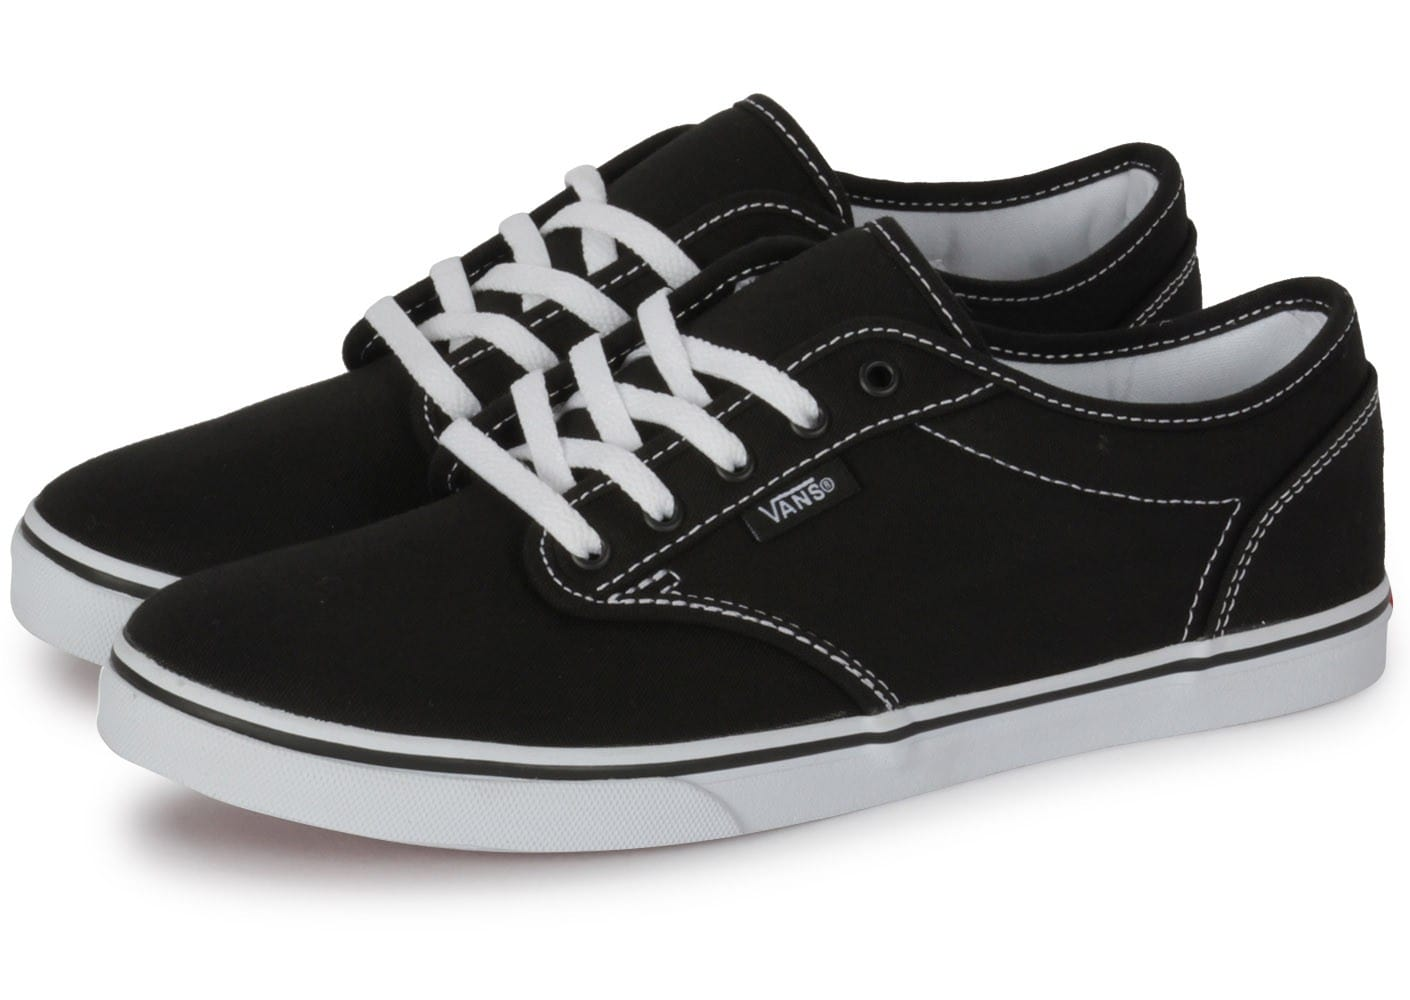 Vans Atwood Noire Chaussures Chaussures Chausport